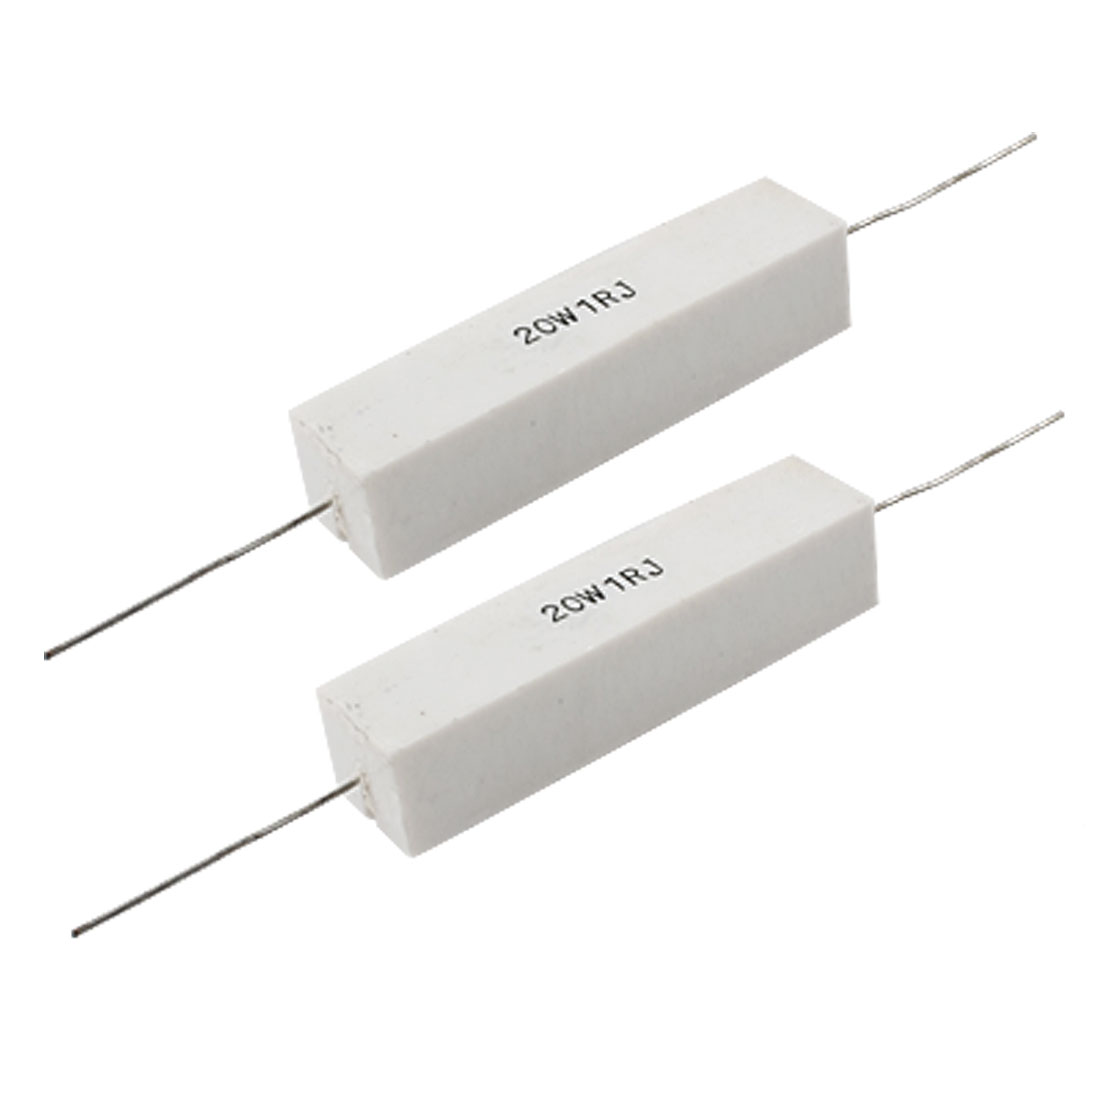 2 x 20W 1 Ohm 5% Fixed Type Wire Wound Cement Resistors